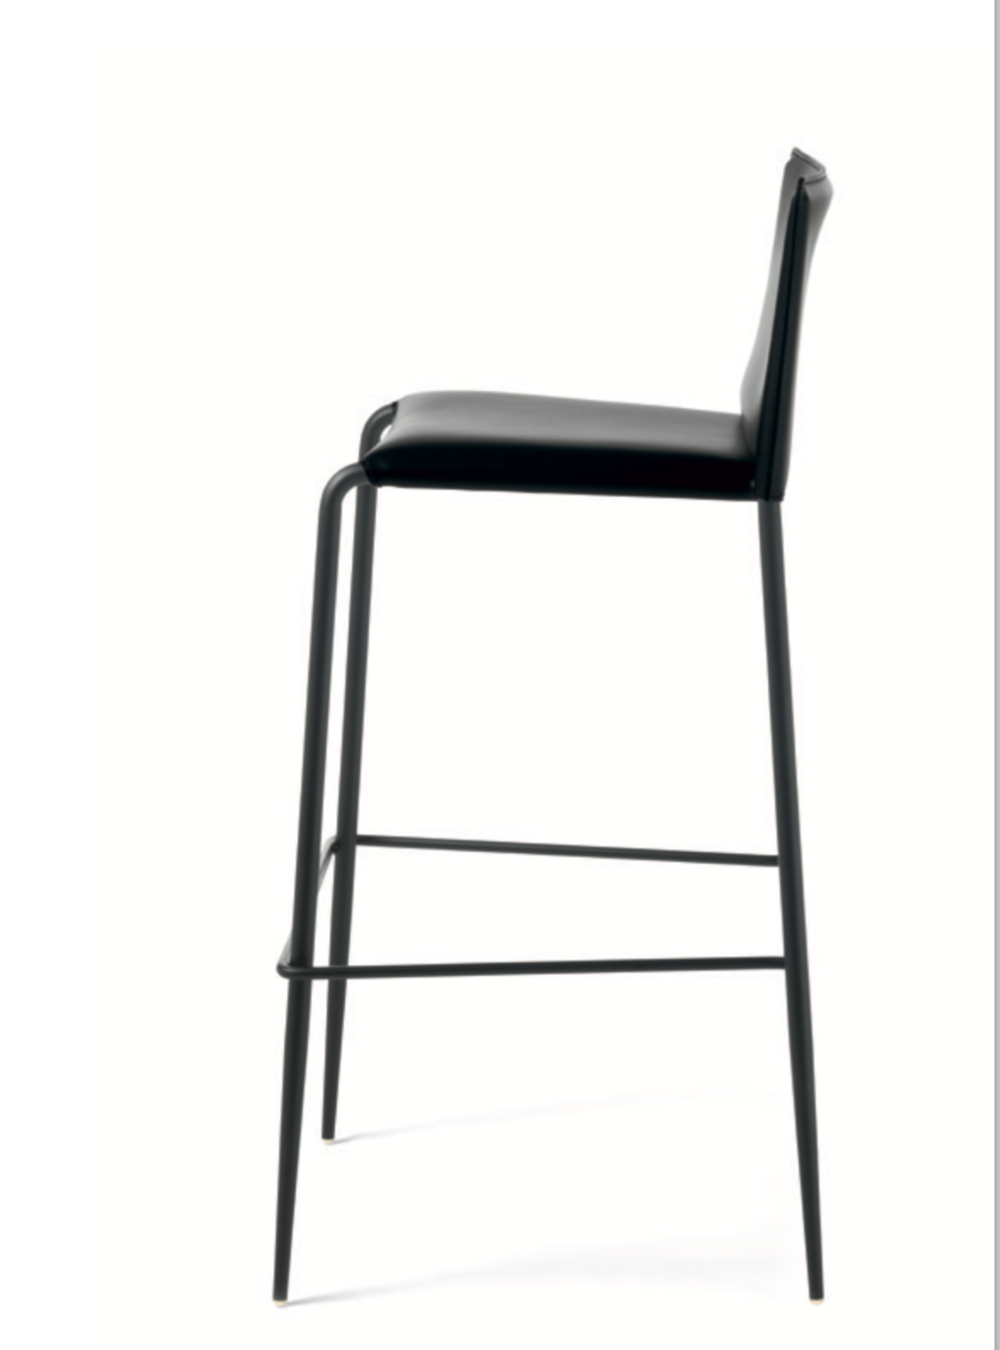 gaz-modern-italian-chairs-stools-furniture-g-9.png